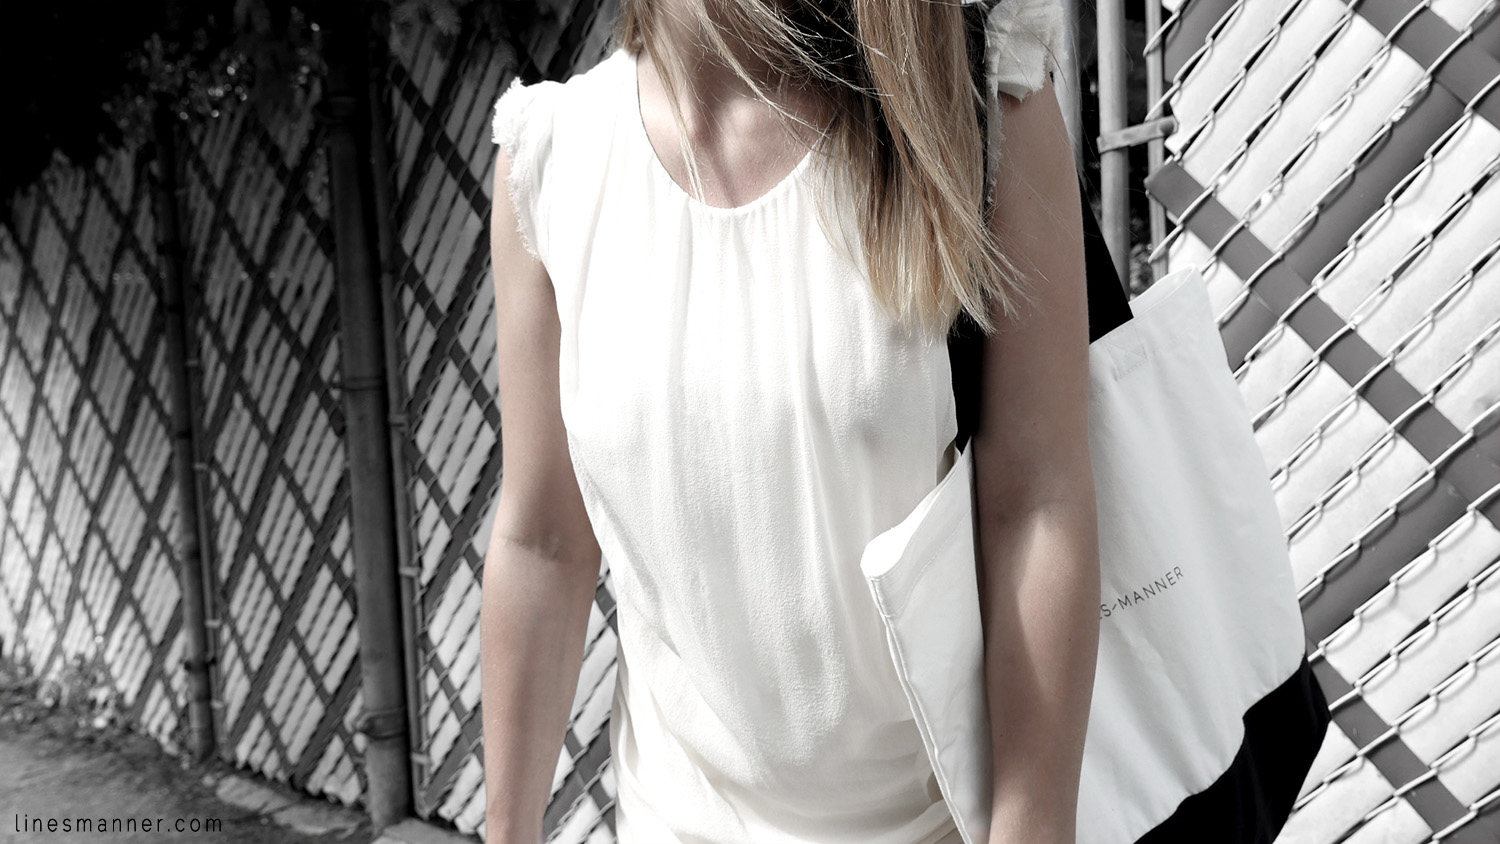 Lines-Manner-Remind-2015-Minimal-Essential-Outfit-Inspiration-Blog-Timeless-Year-Seasons-Details-Travel-Fashion-Versatile-Clean-Sleek-Quality-57